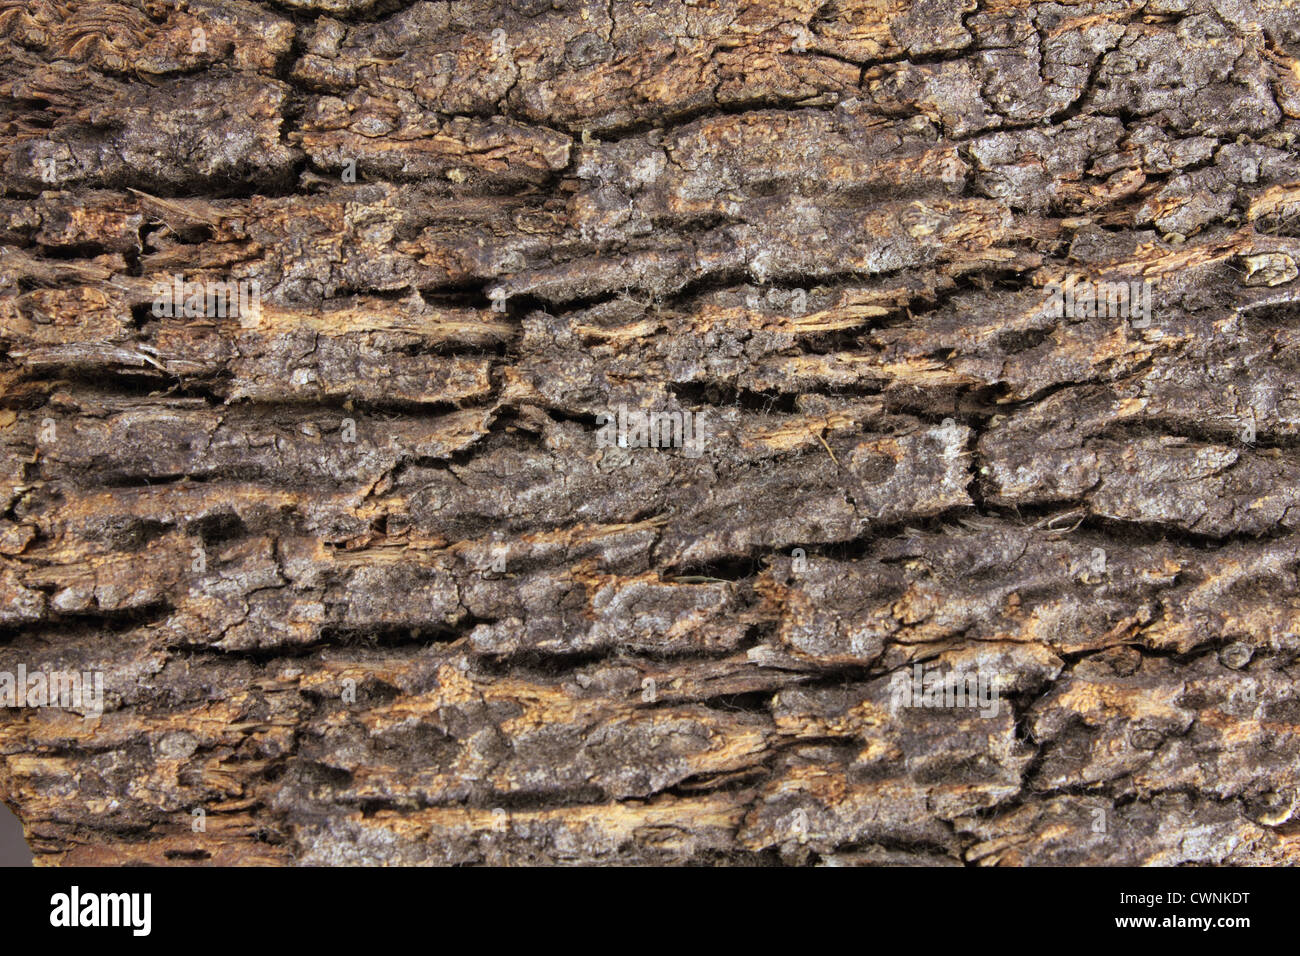 Tree Bark Texture Background - Stock Image